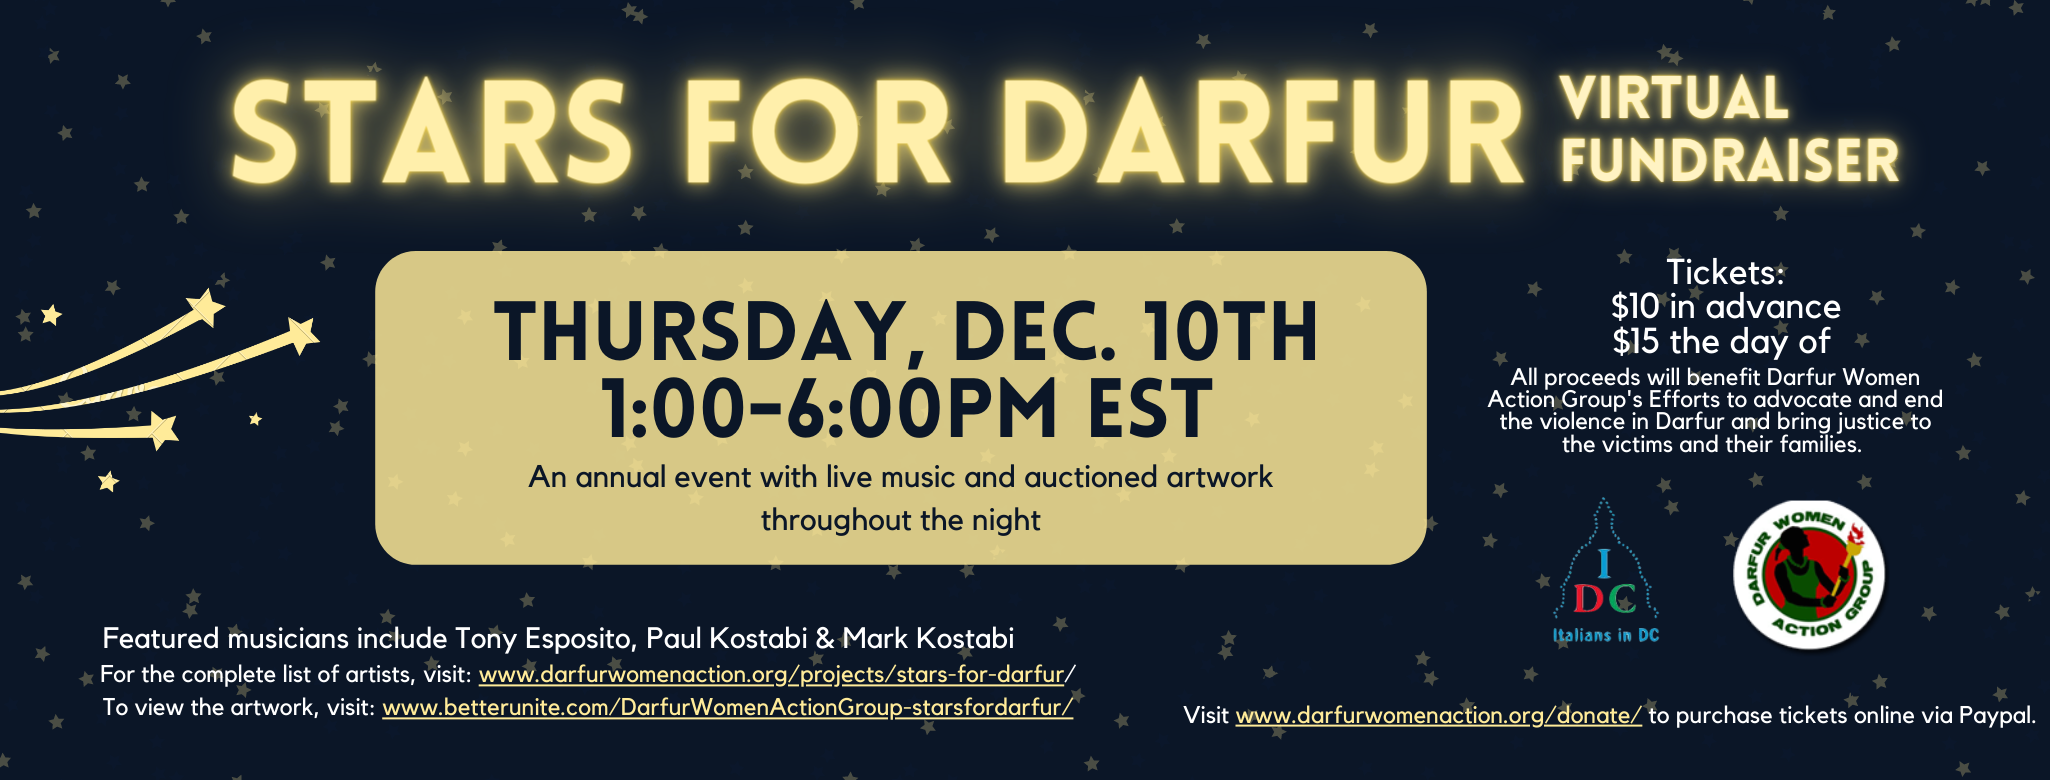 Stars for Darfur_FB Cover